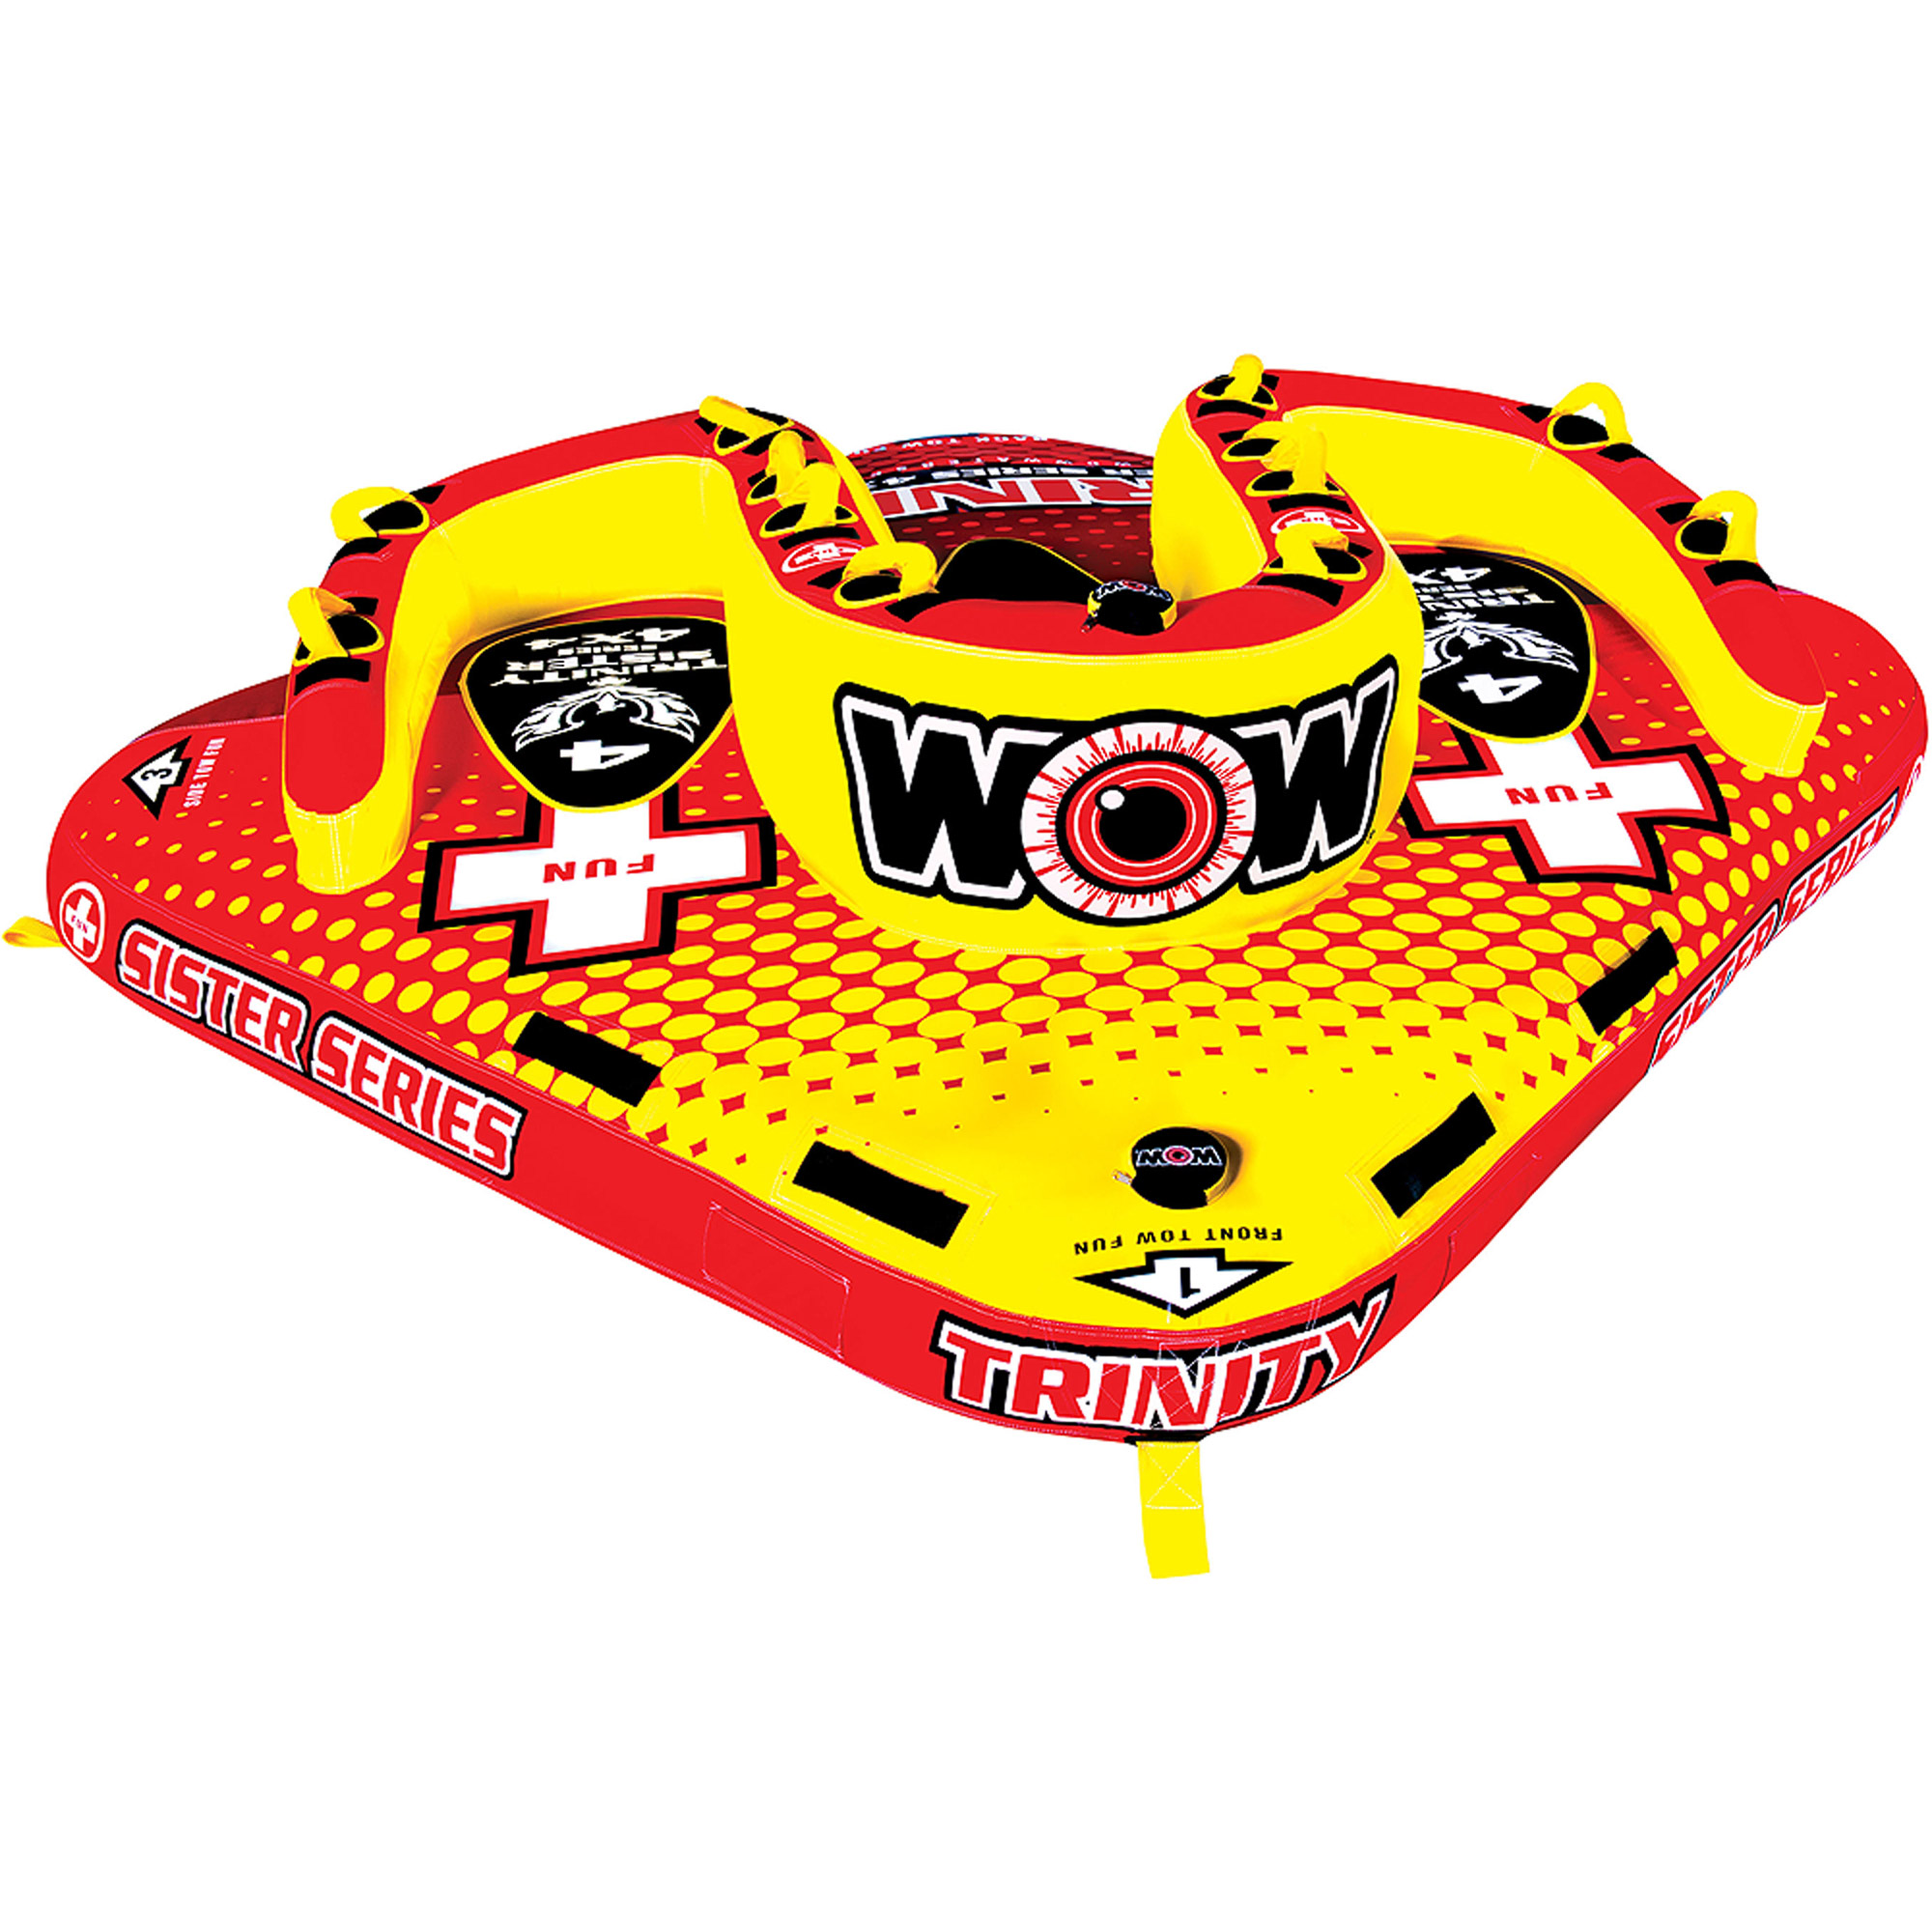 WOW World Of Watersports 15-1080 Trinity Sister Series 4-Rider Towable by World of Watersports